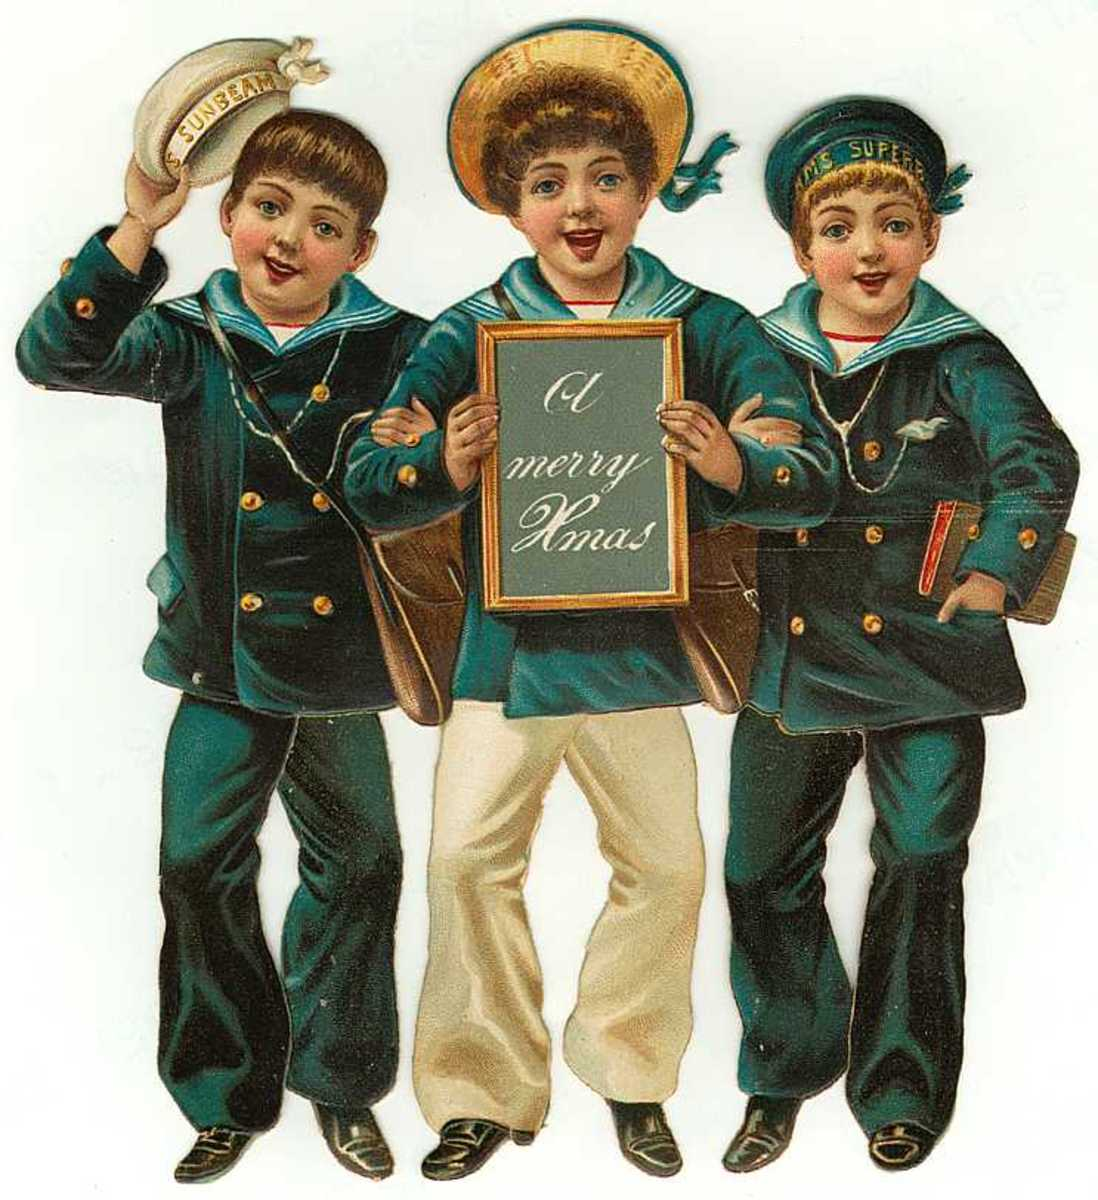 Vintage Christmas images: three young sailor boys